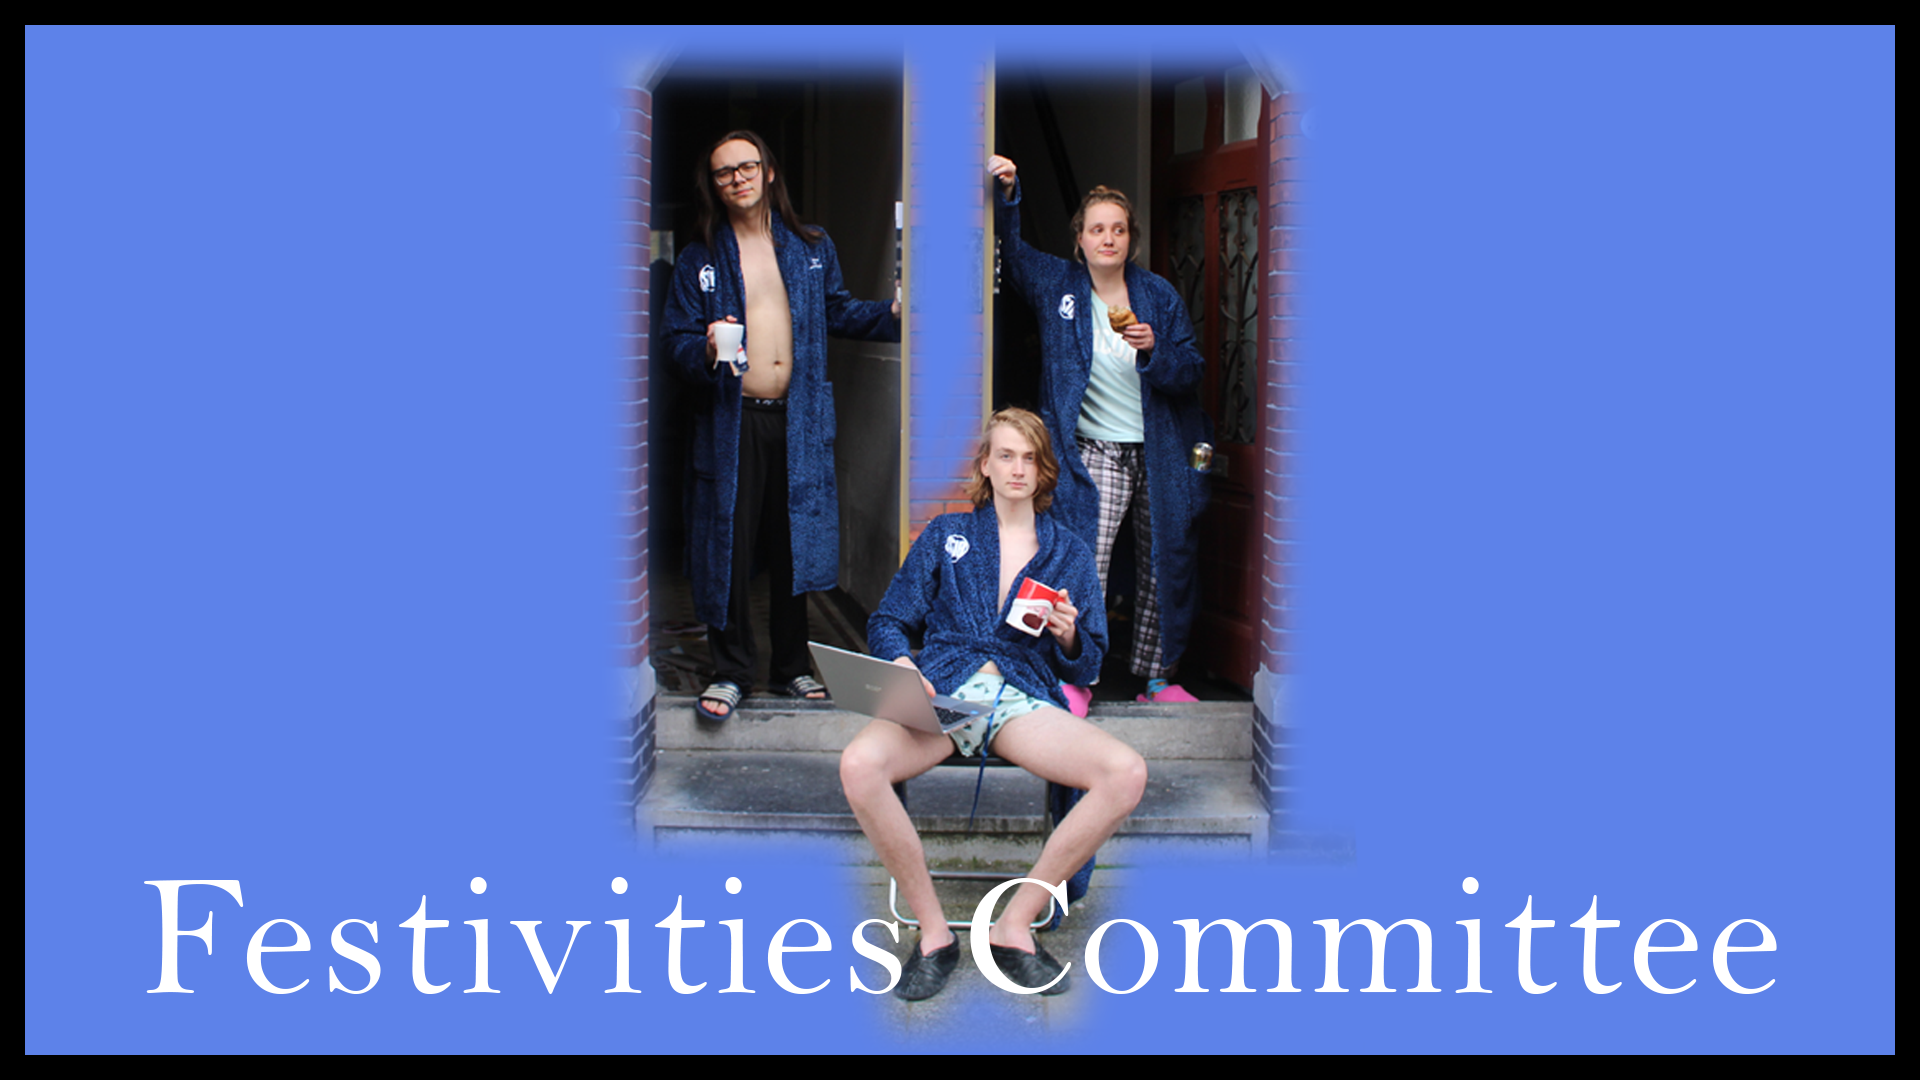 Committee Picture Festivities